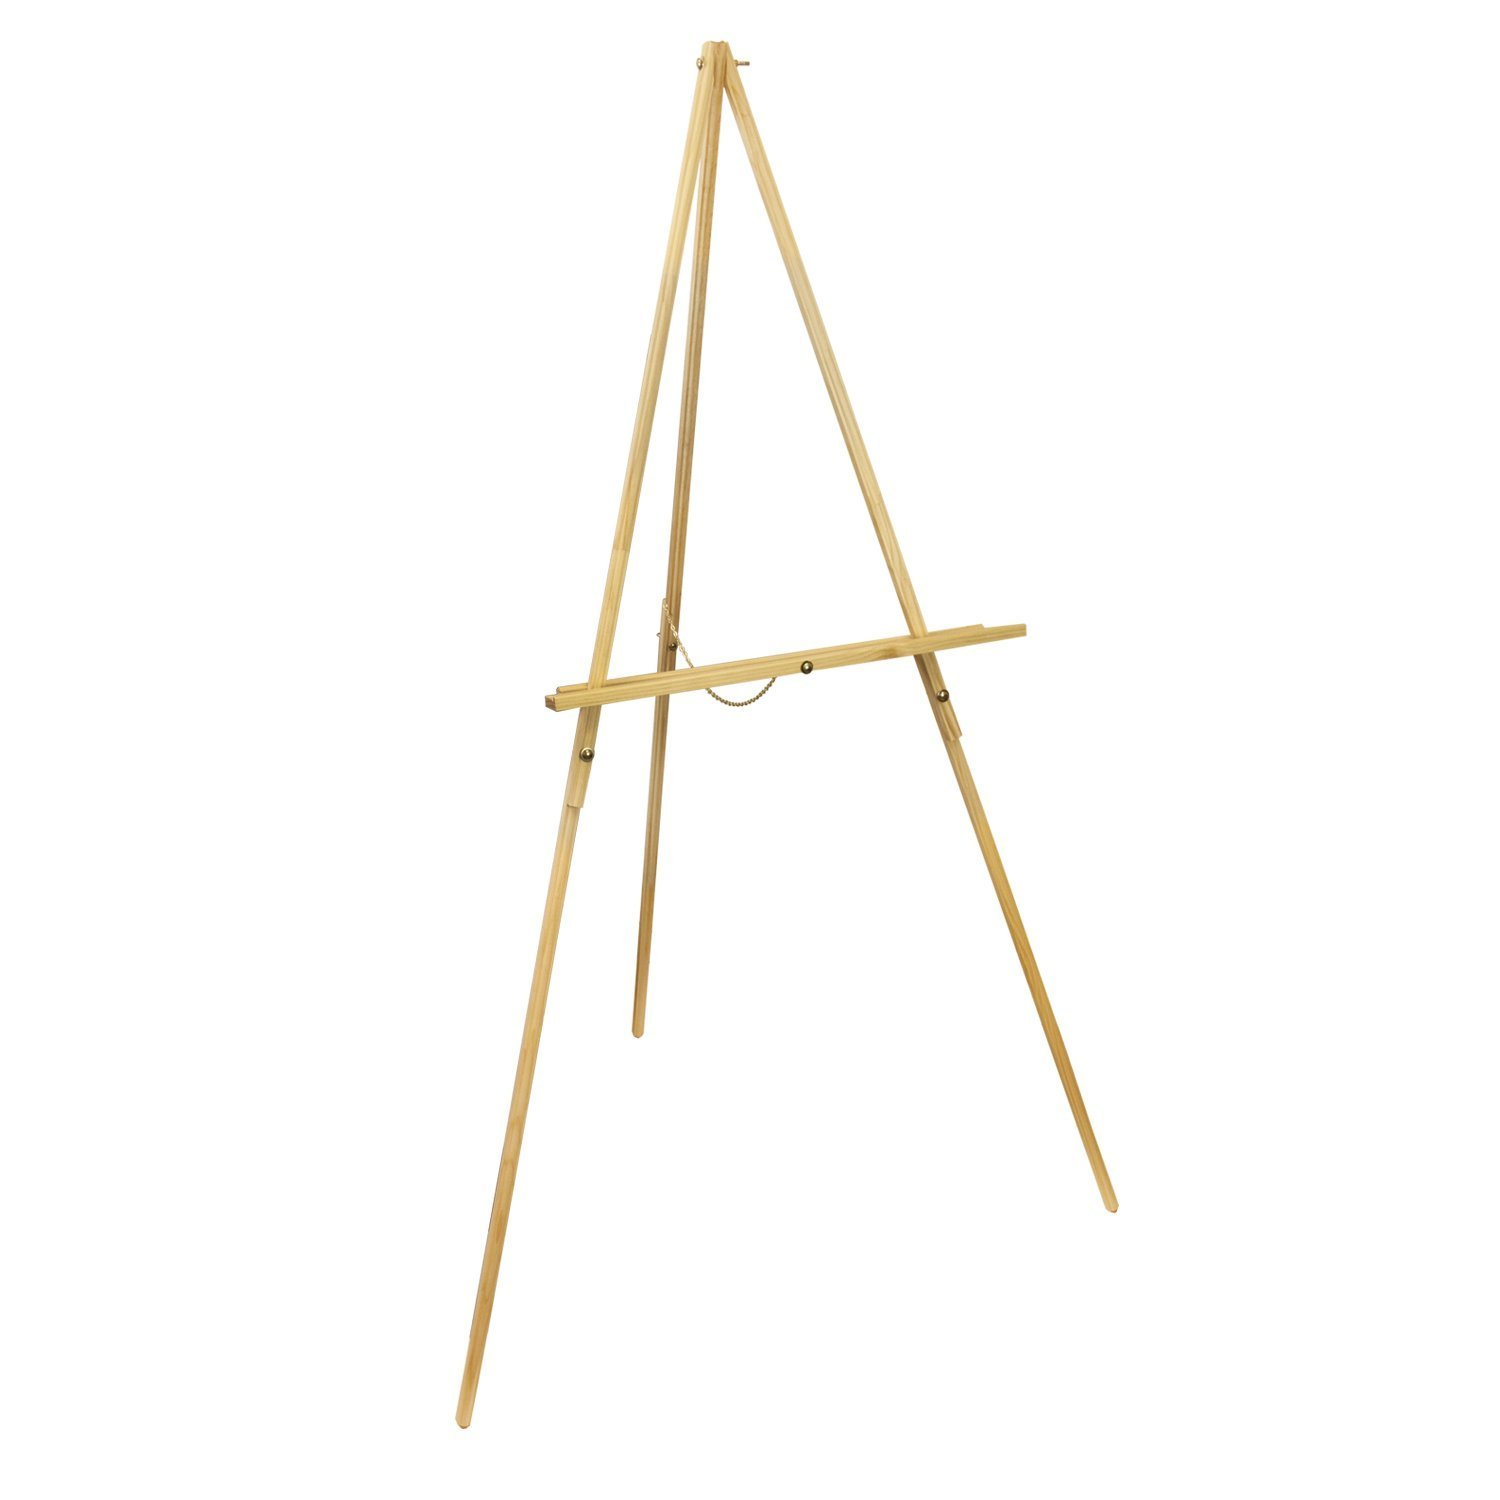 1-Easel Adjustable Tray Chain US Art Supply Torrey 64 inch High x 27-1//2 inch Wide Wooden Tripod Display Floor Easel /& Artist Easel